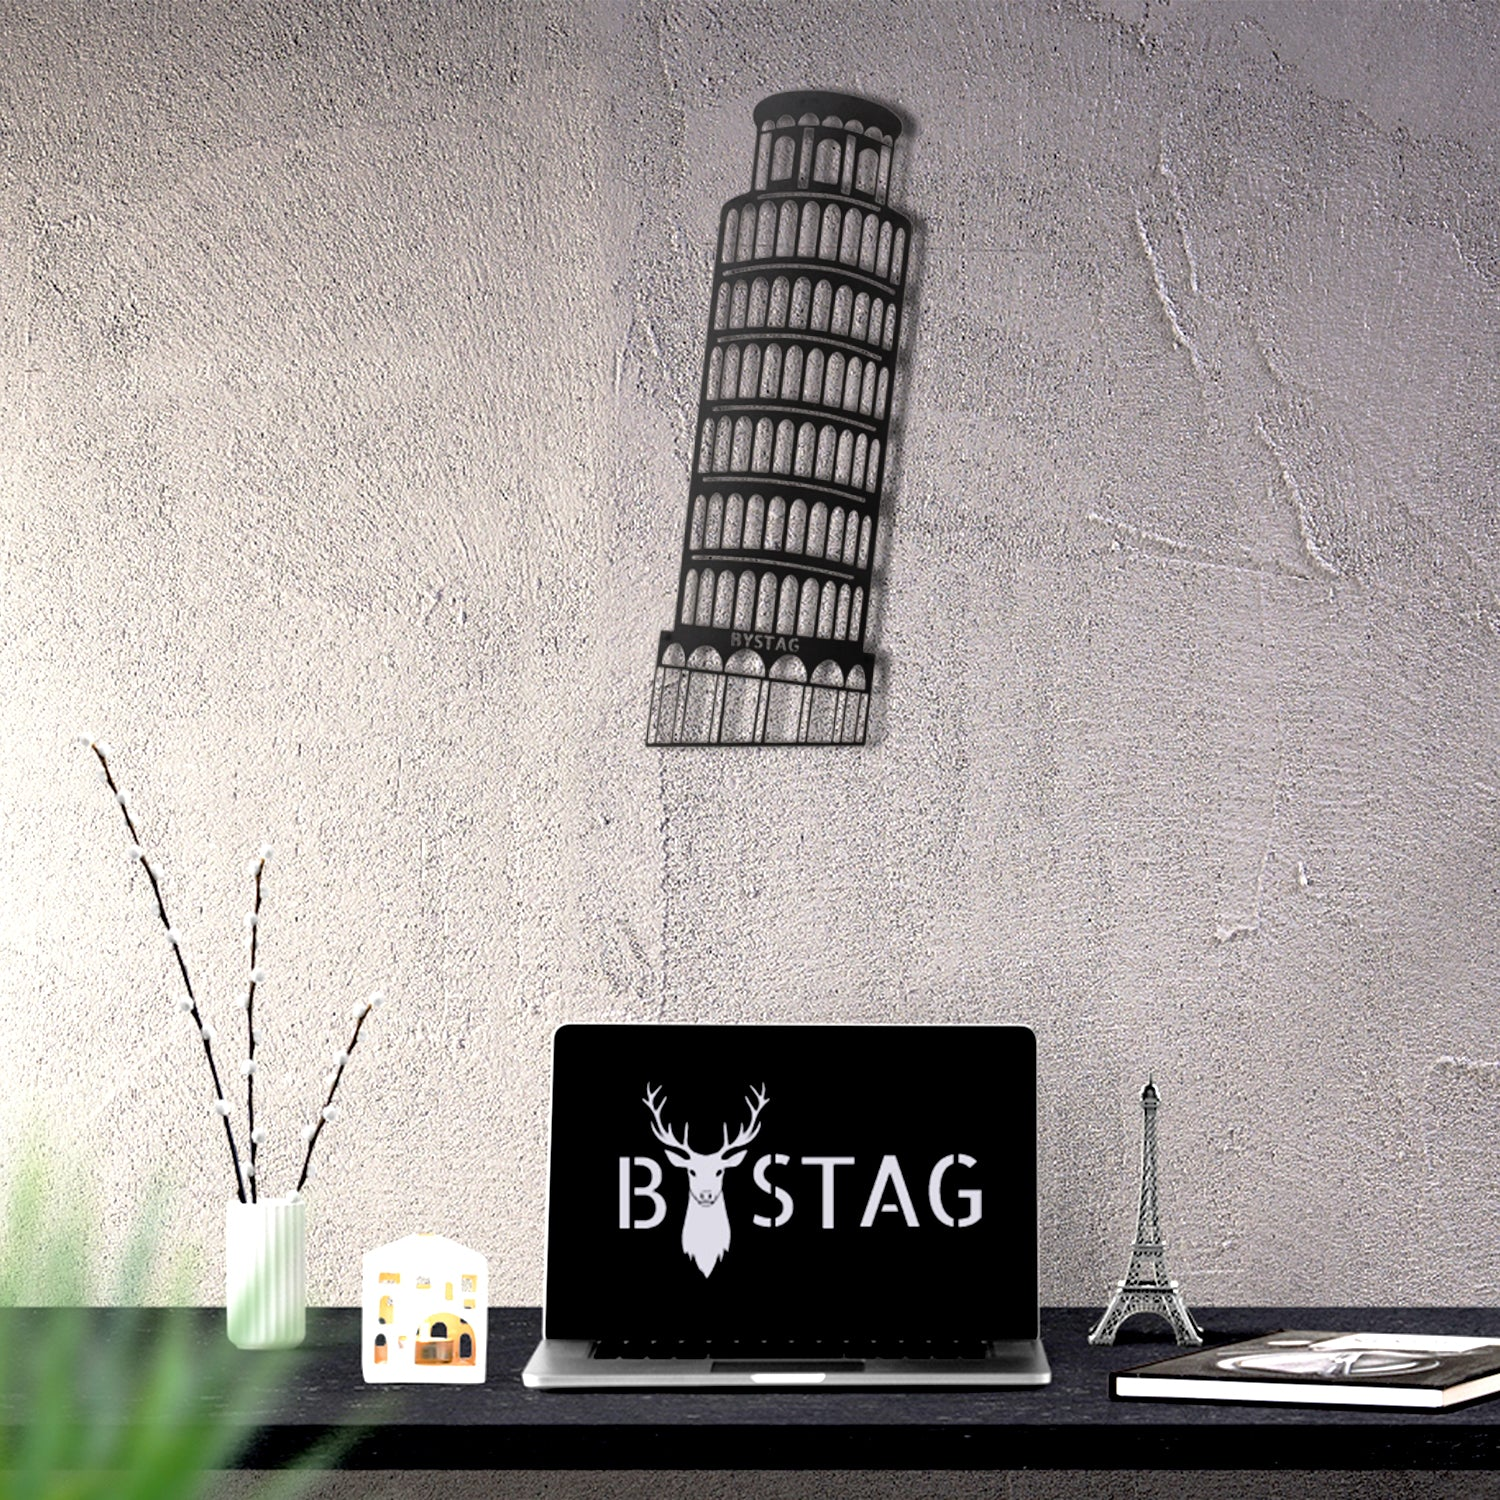 Bystag metal dekoratif duvar aksesuarı pisa- Bystag metal wall art-wall art-wall decor-metal wall decor-pisa